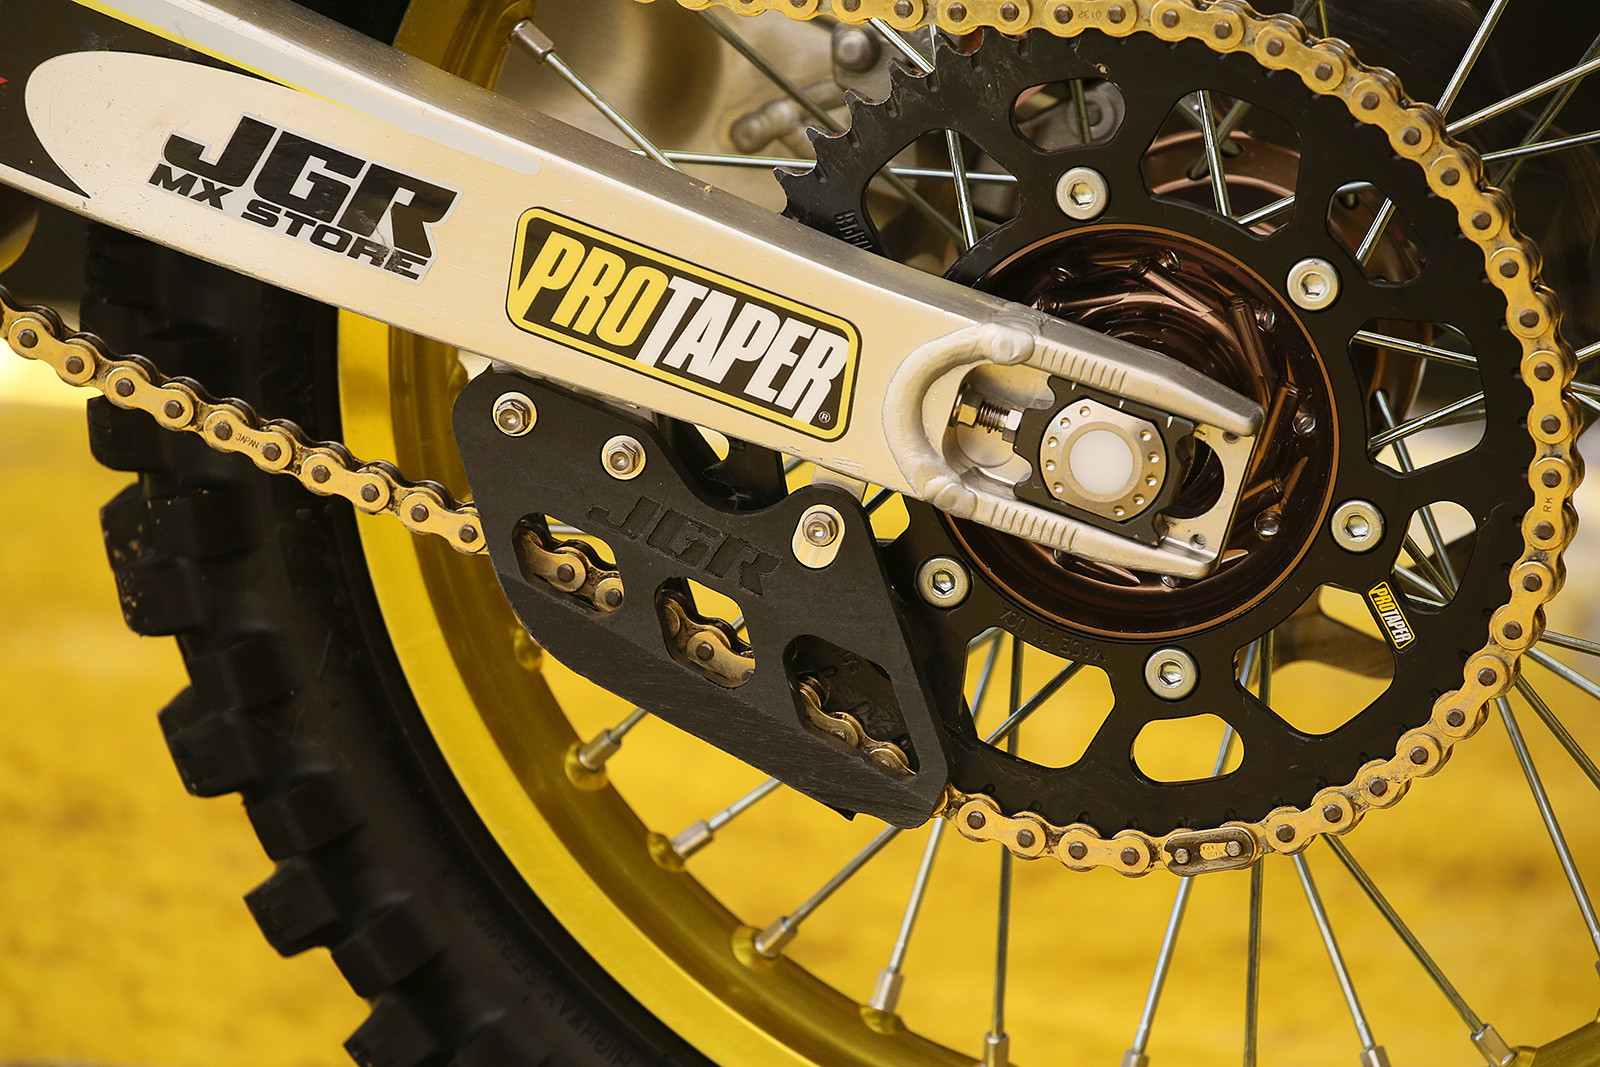 JGR is still doing hard parts for all brands, and had a new chain guide on Justin Barcia's Suzuki this weekend. Unfortunately, Justin had a crash in practice that kept him out of the motos.